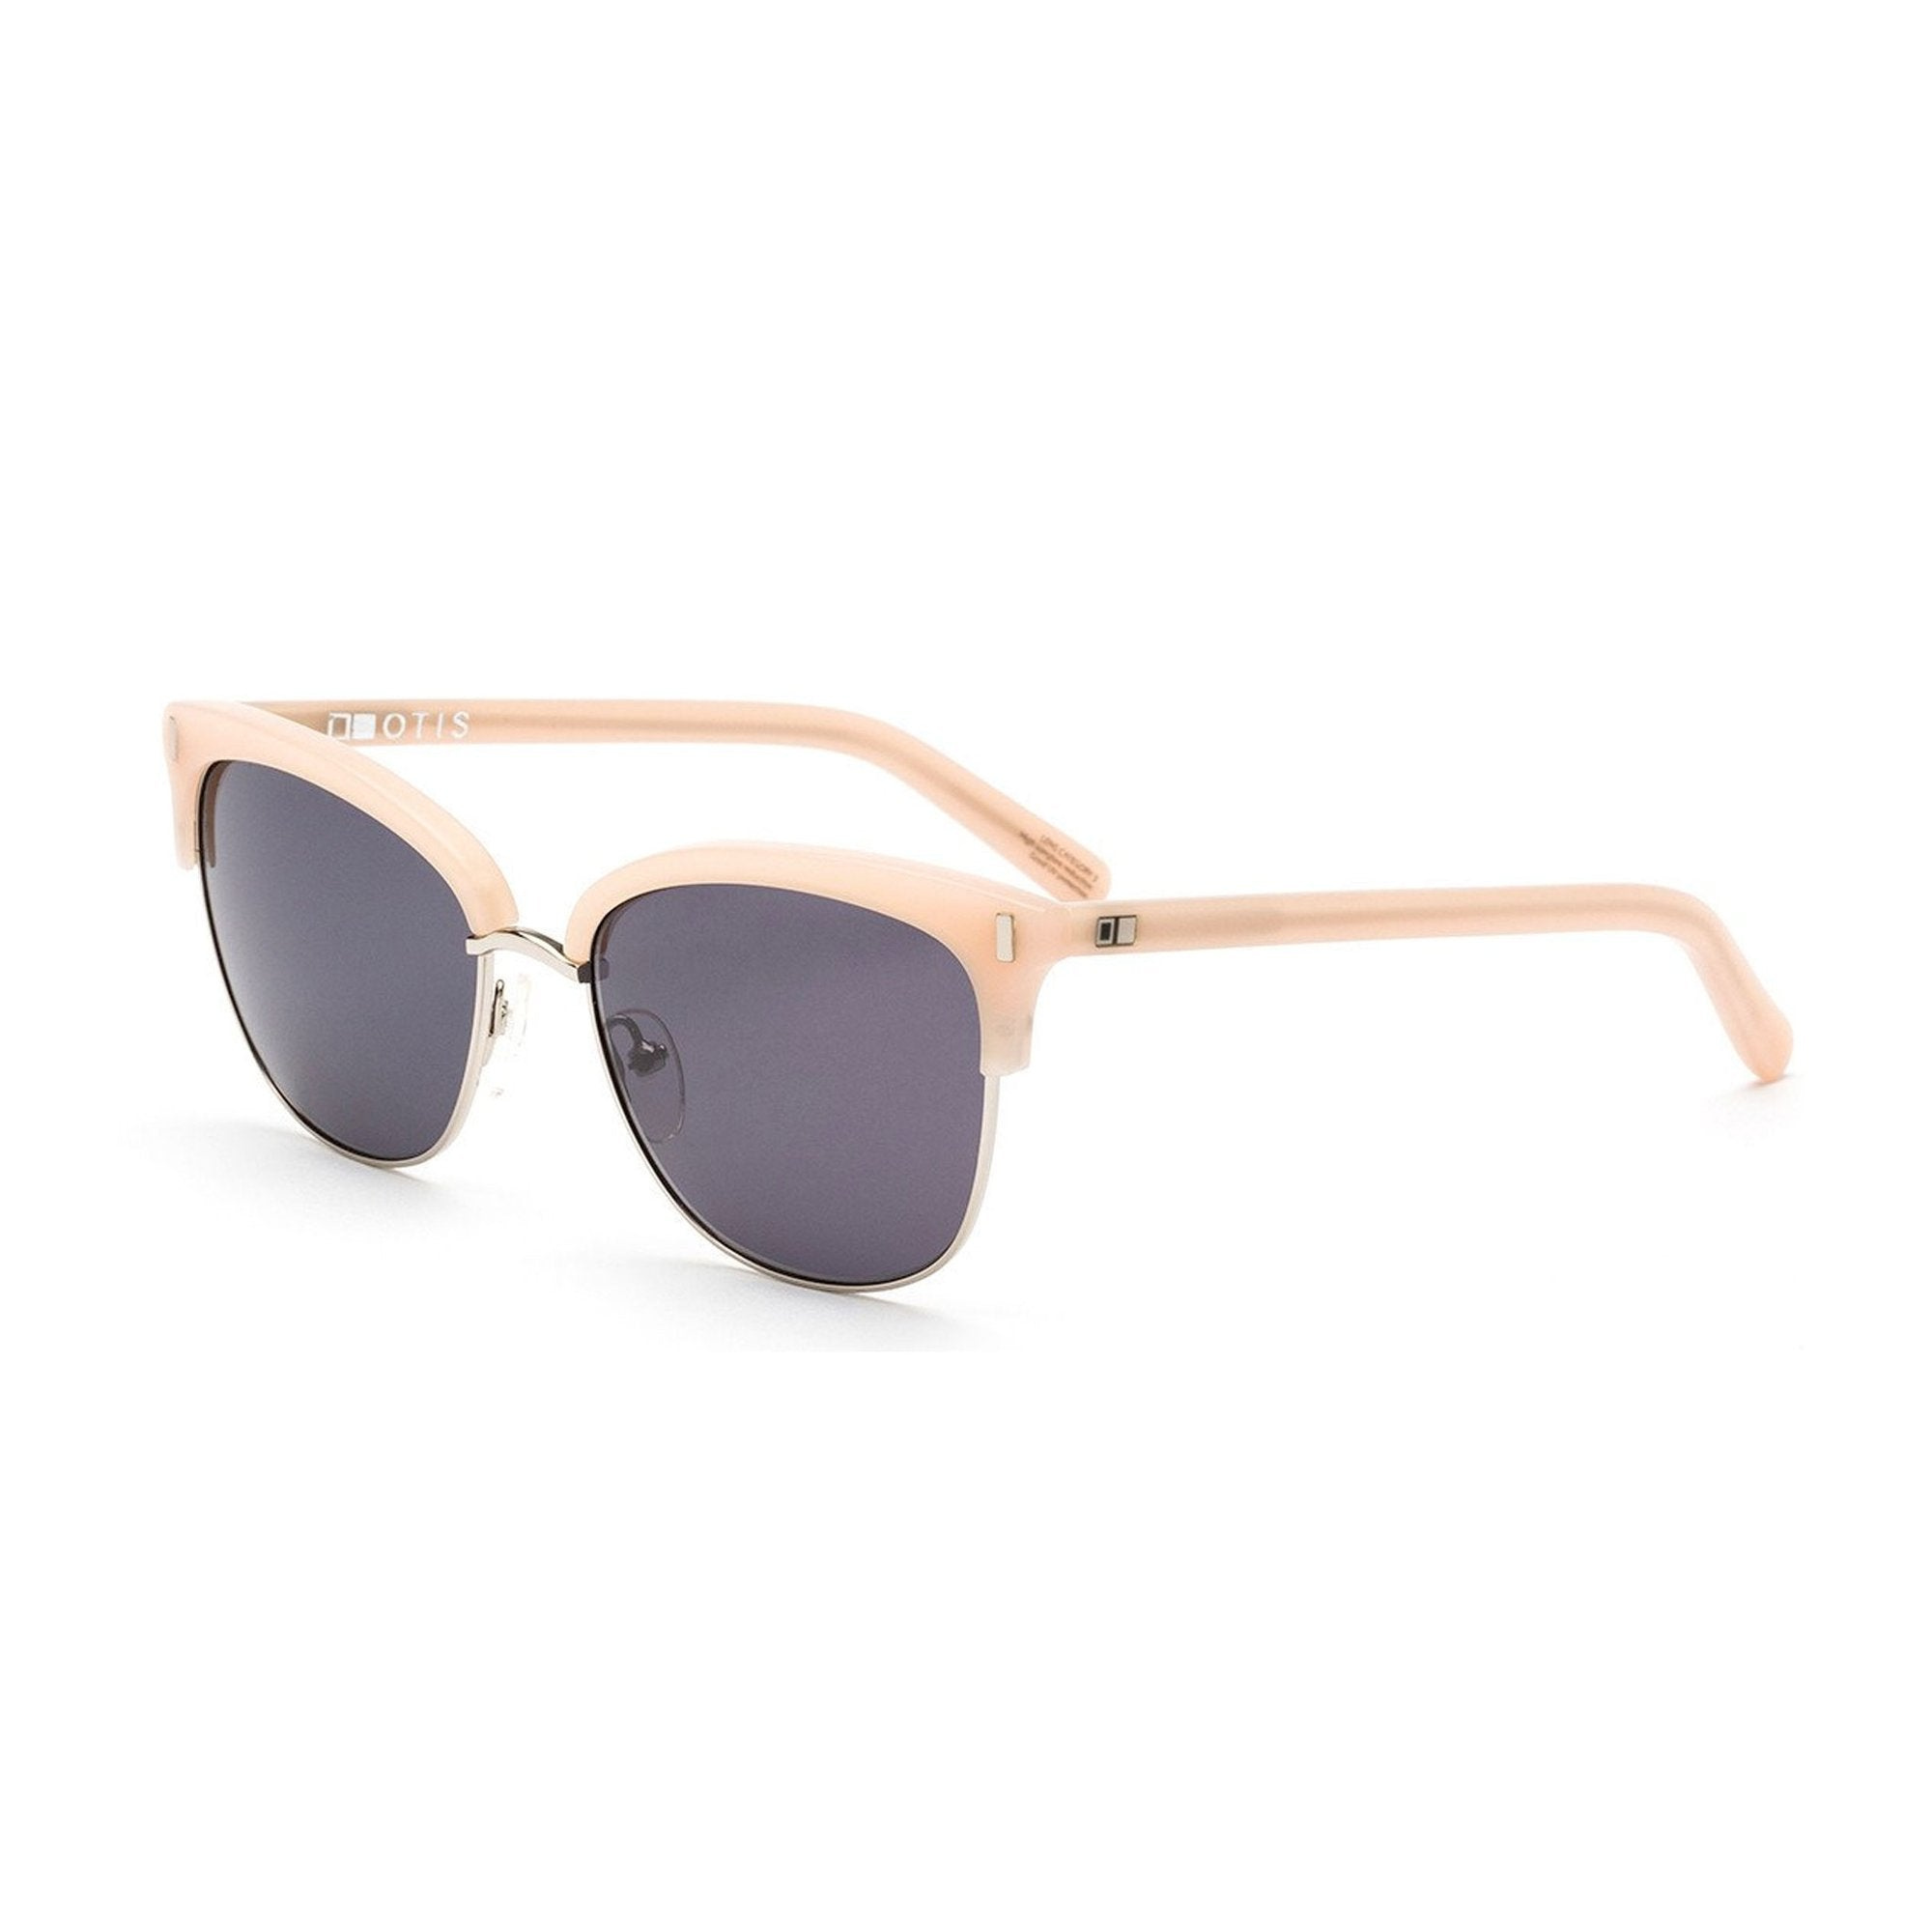 Otis Little Lies Women's Sunglasses